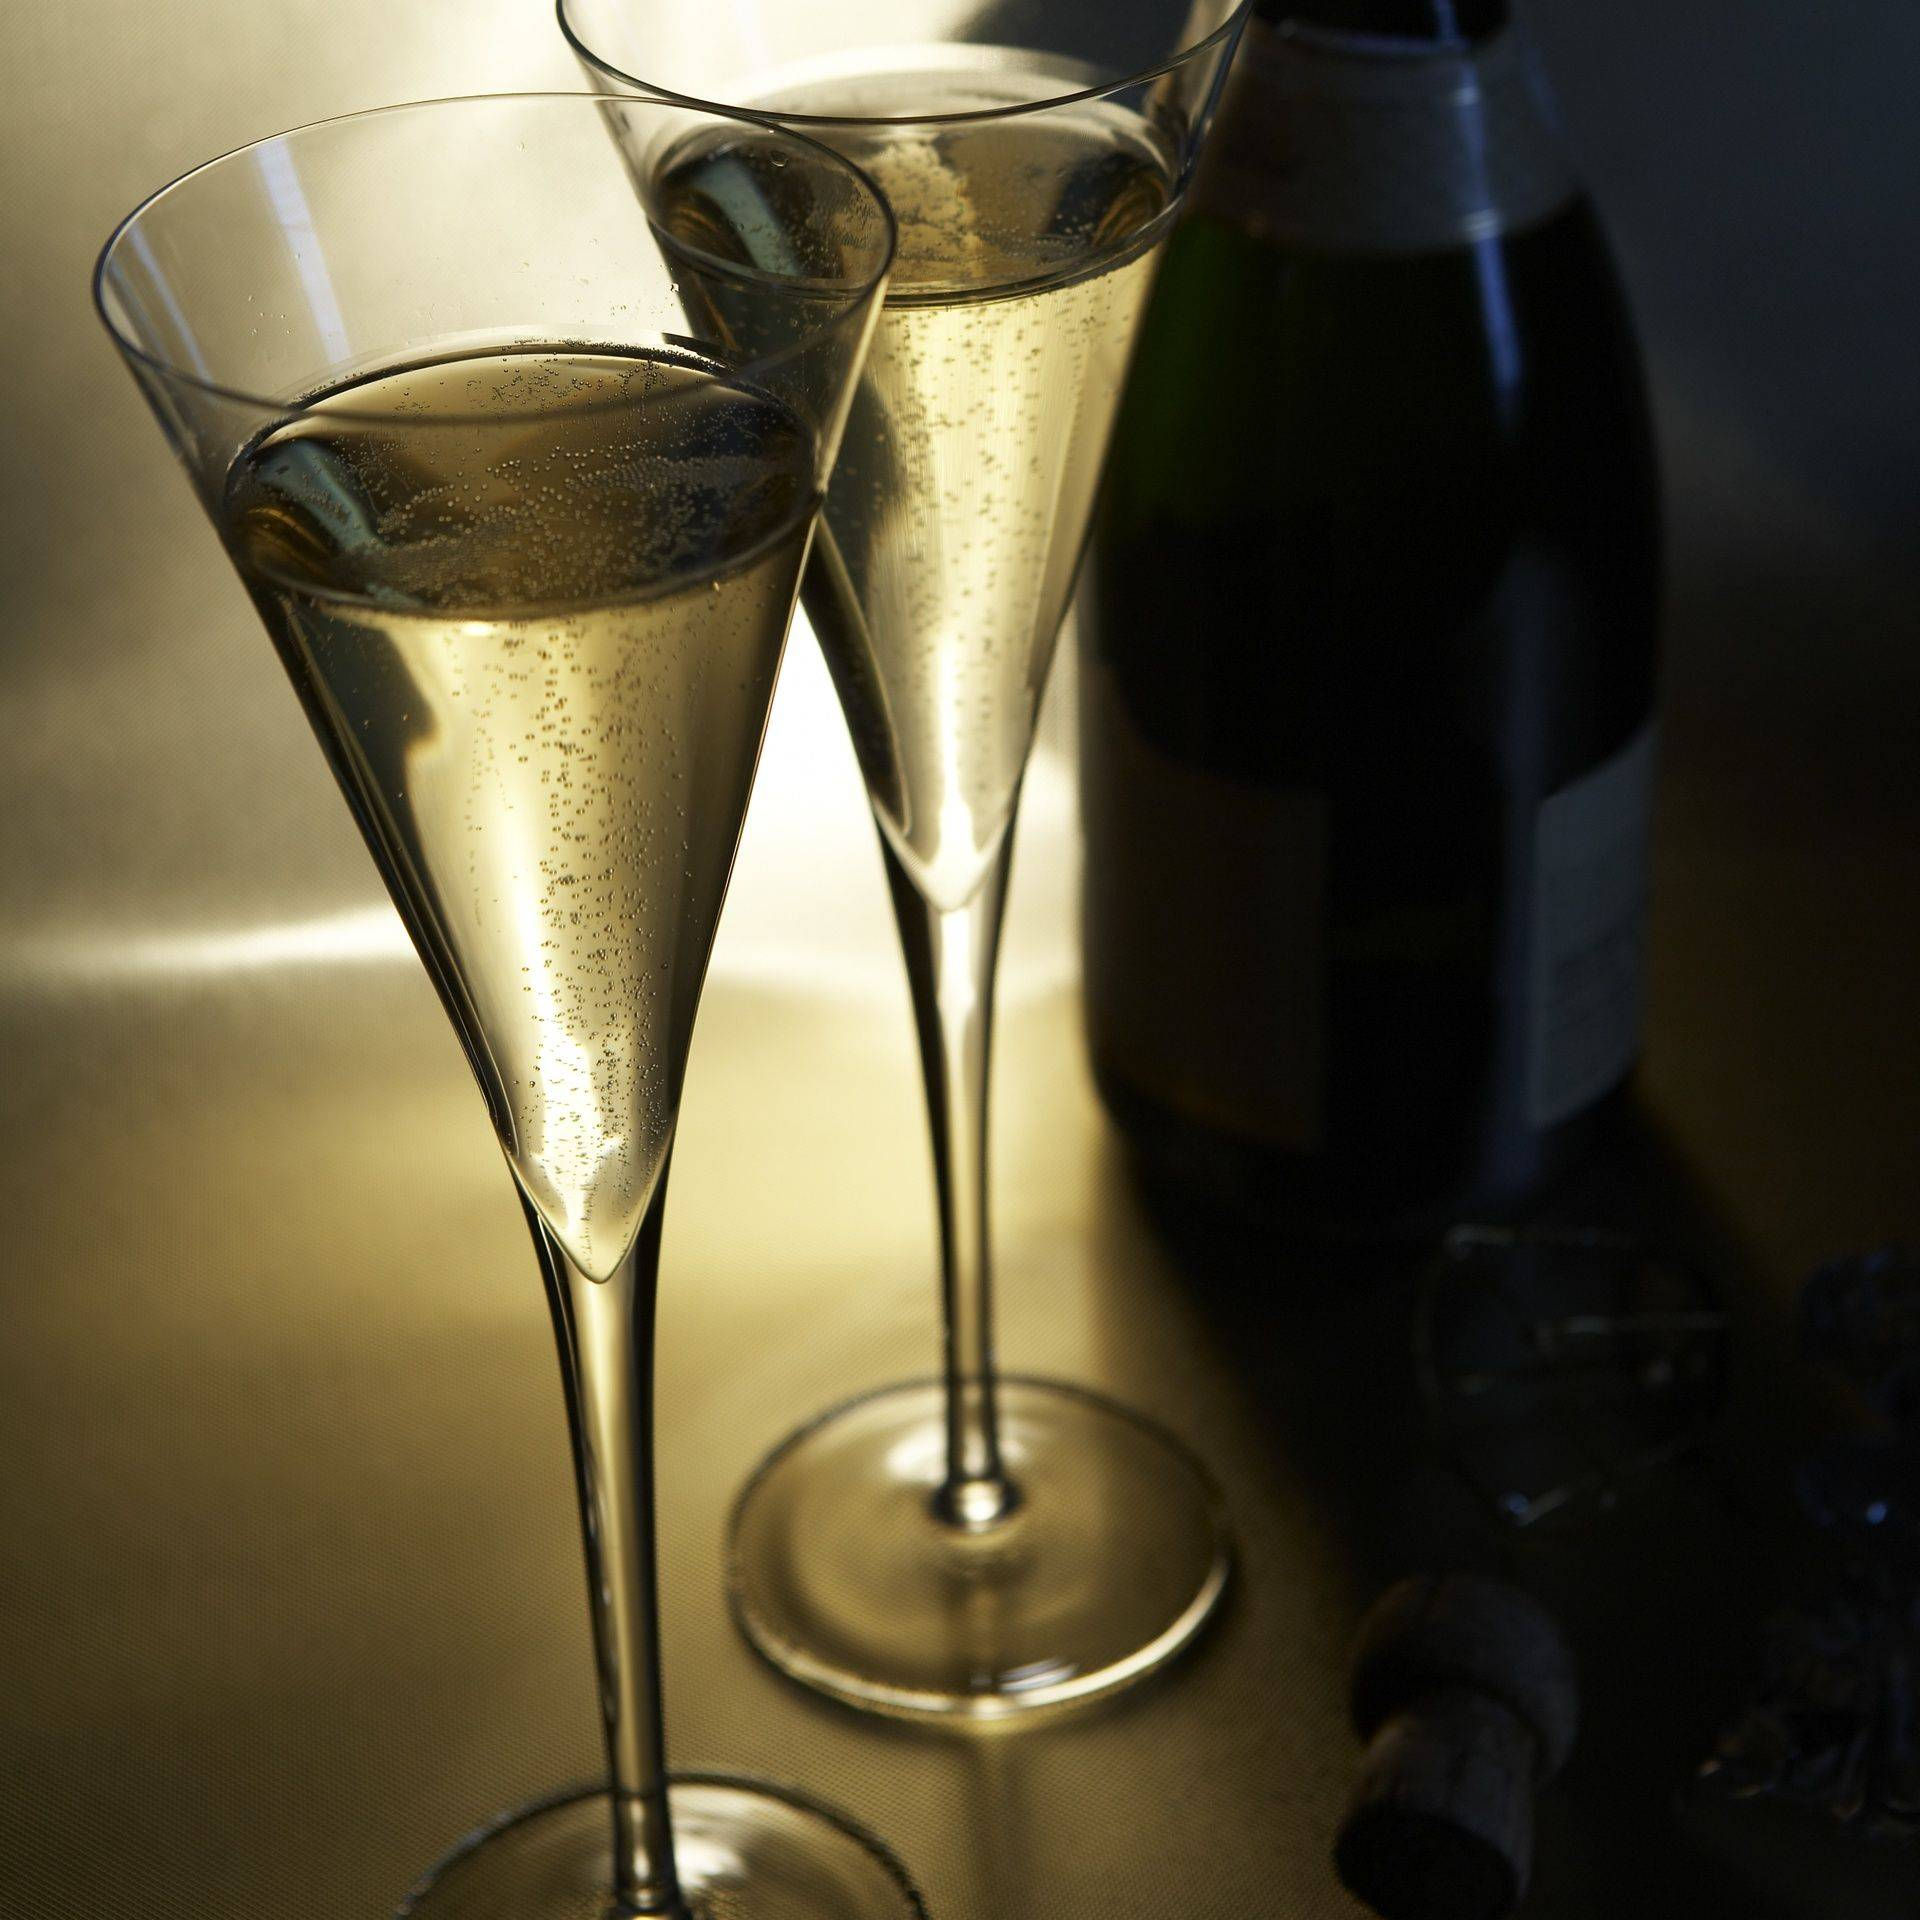 Champagne reception, Leeds Golf Centre, Leeds restaurant, Leeds food, Leeds wedding venue, Leeds functionroom hire, bespokecatering, a la carte menu